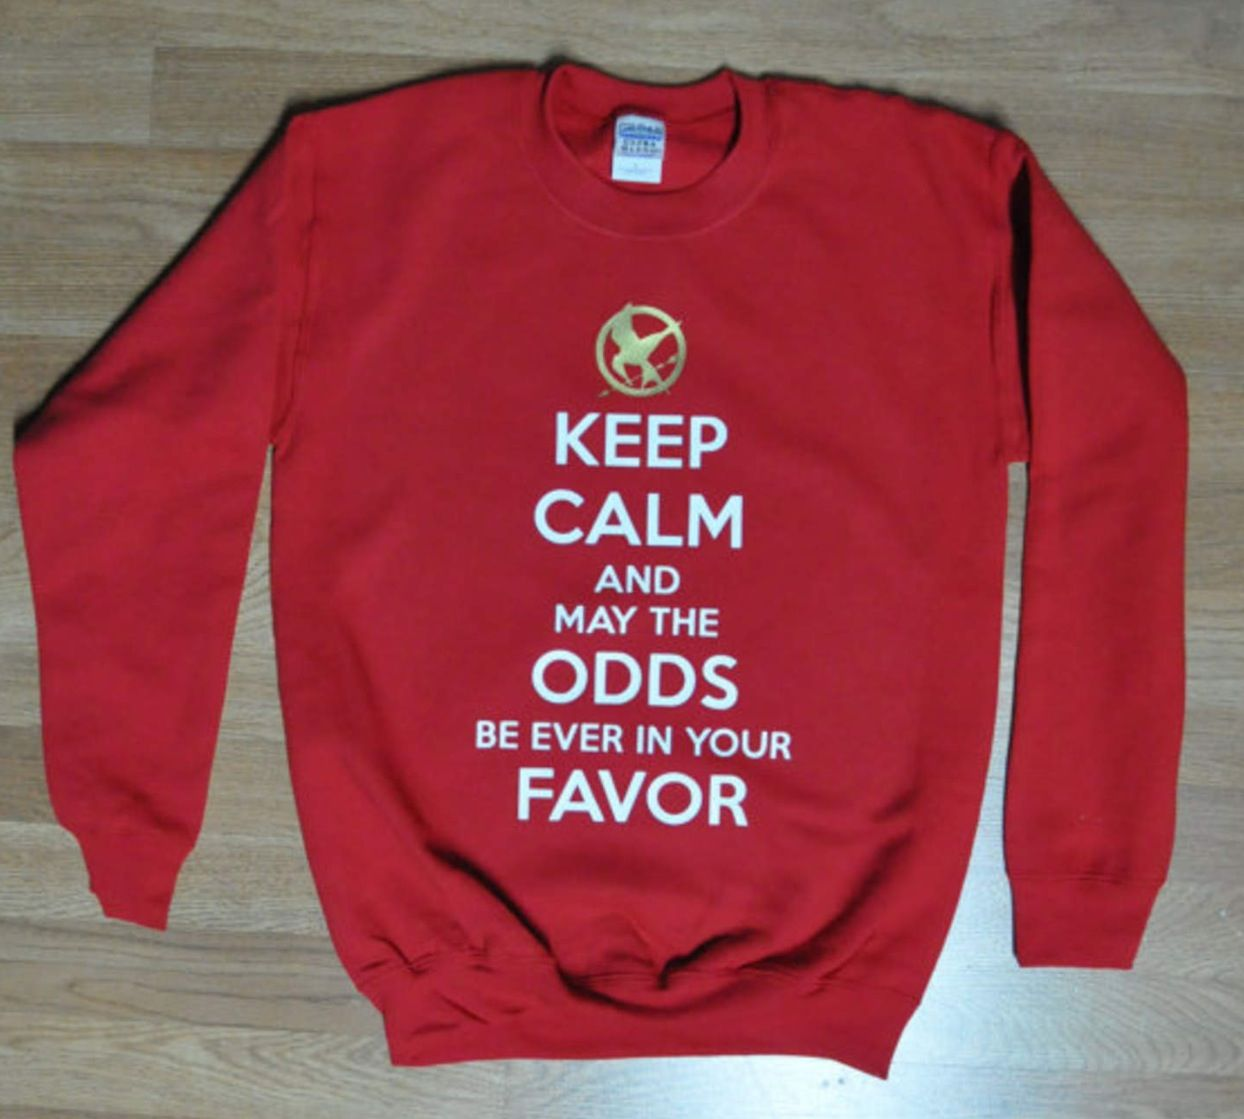 May the odds be ever in your favor #thehungergames